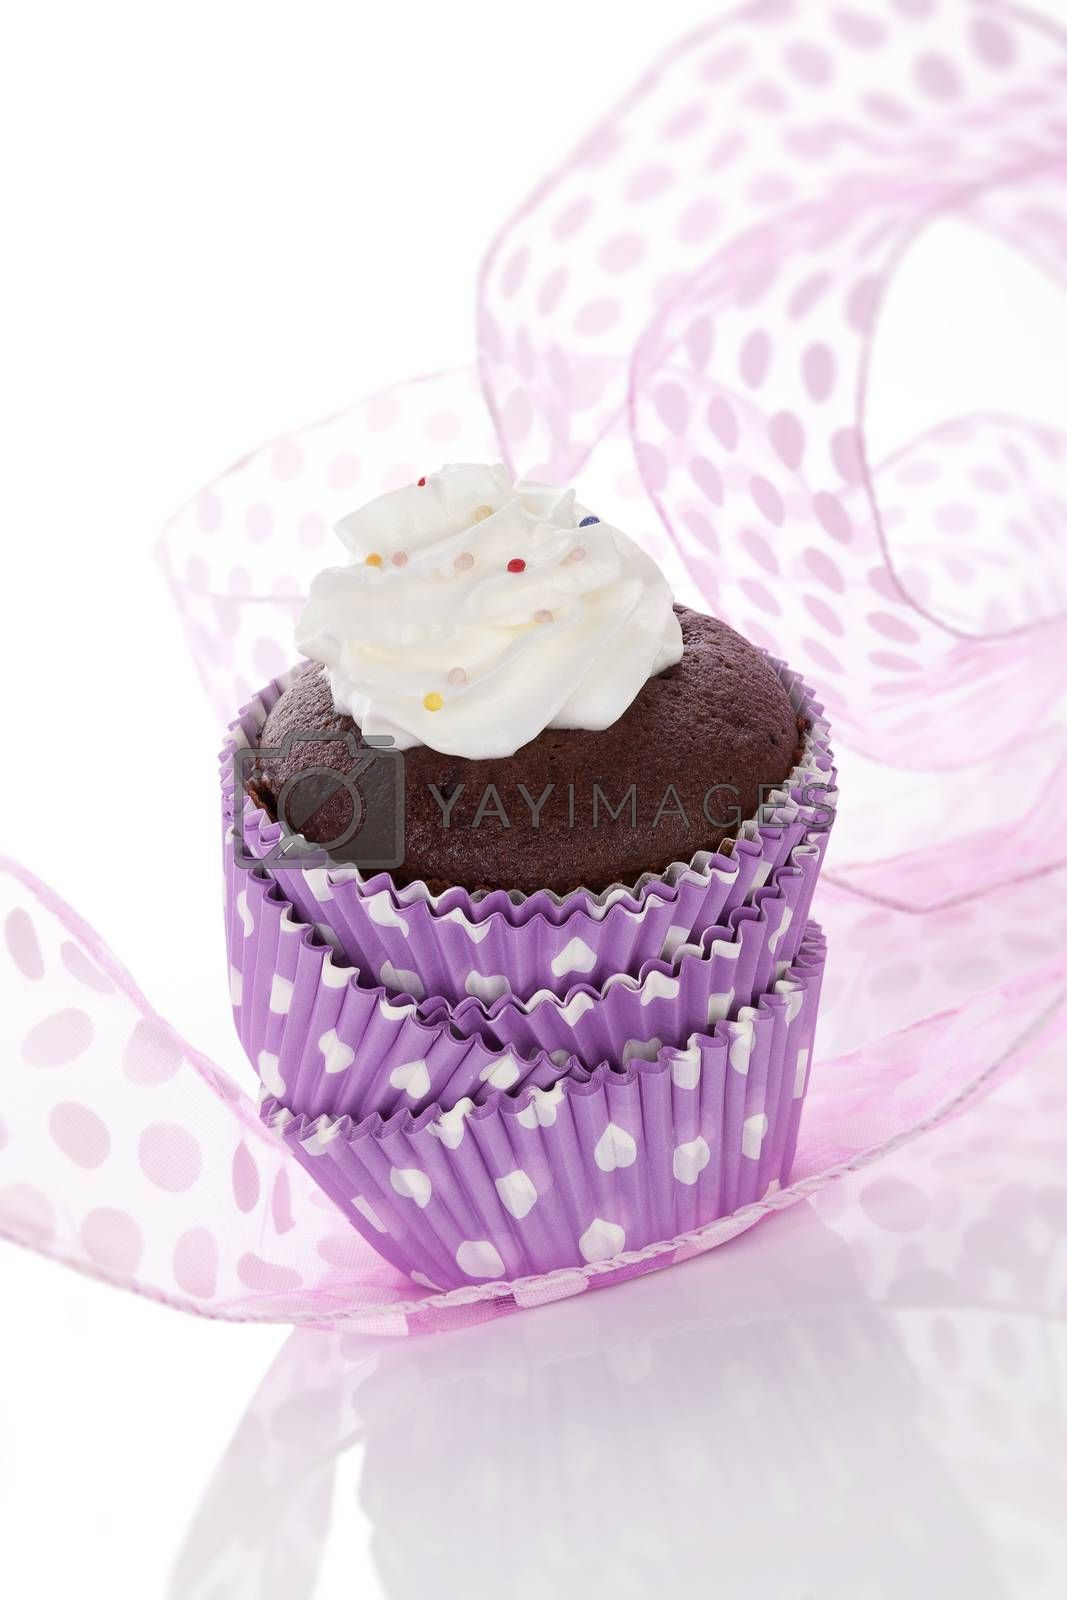 Cupcake. Delicious chocolate cupcake with whipped cream and colorful sprinkles isolated on white background. Contemporary baking concept.